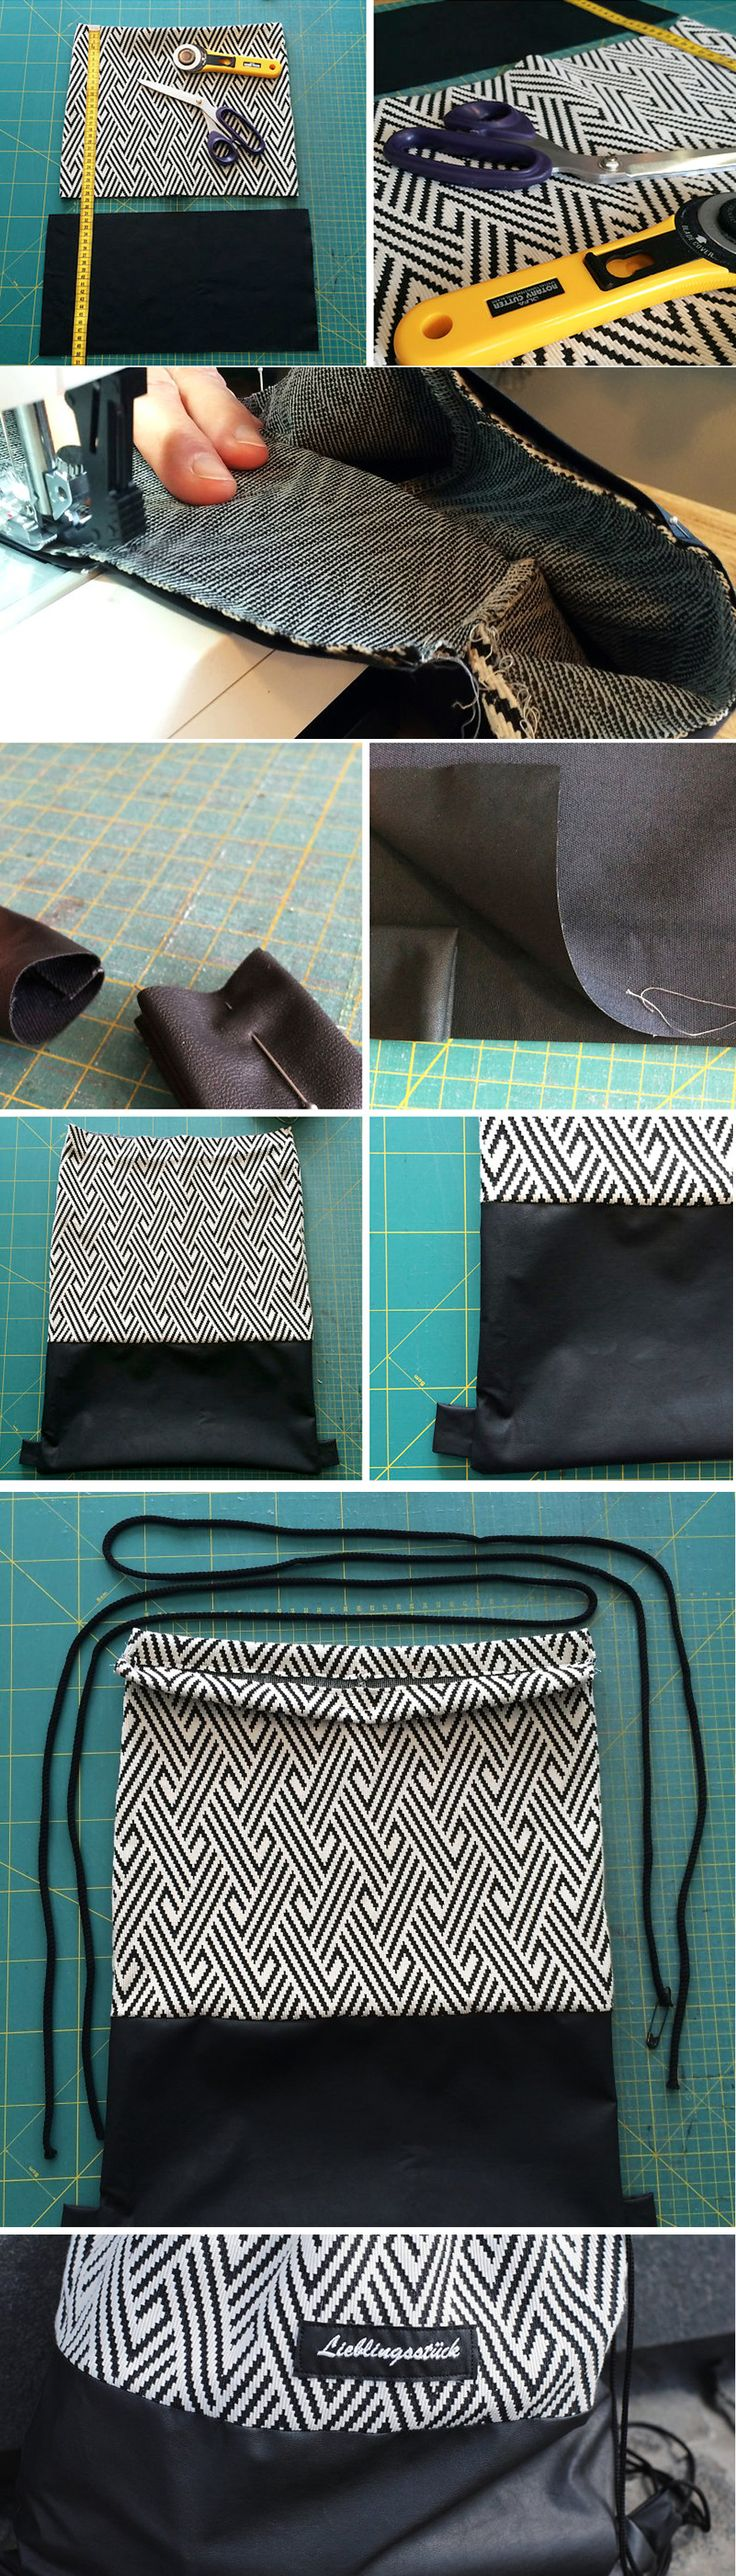 DIY GYMNASTIC BAG